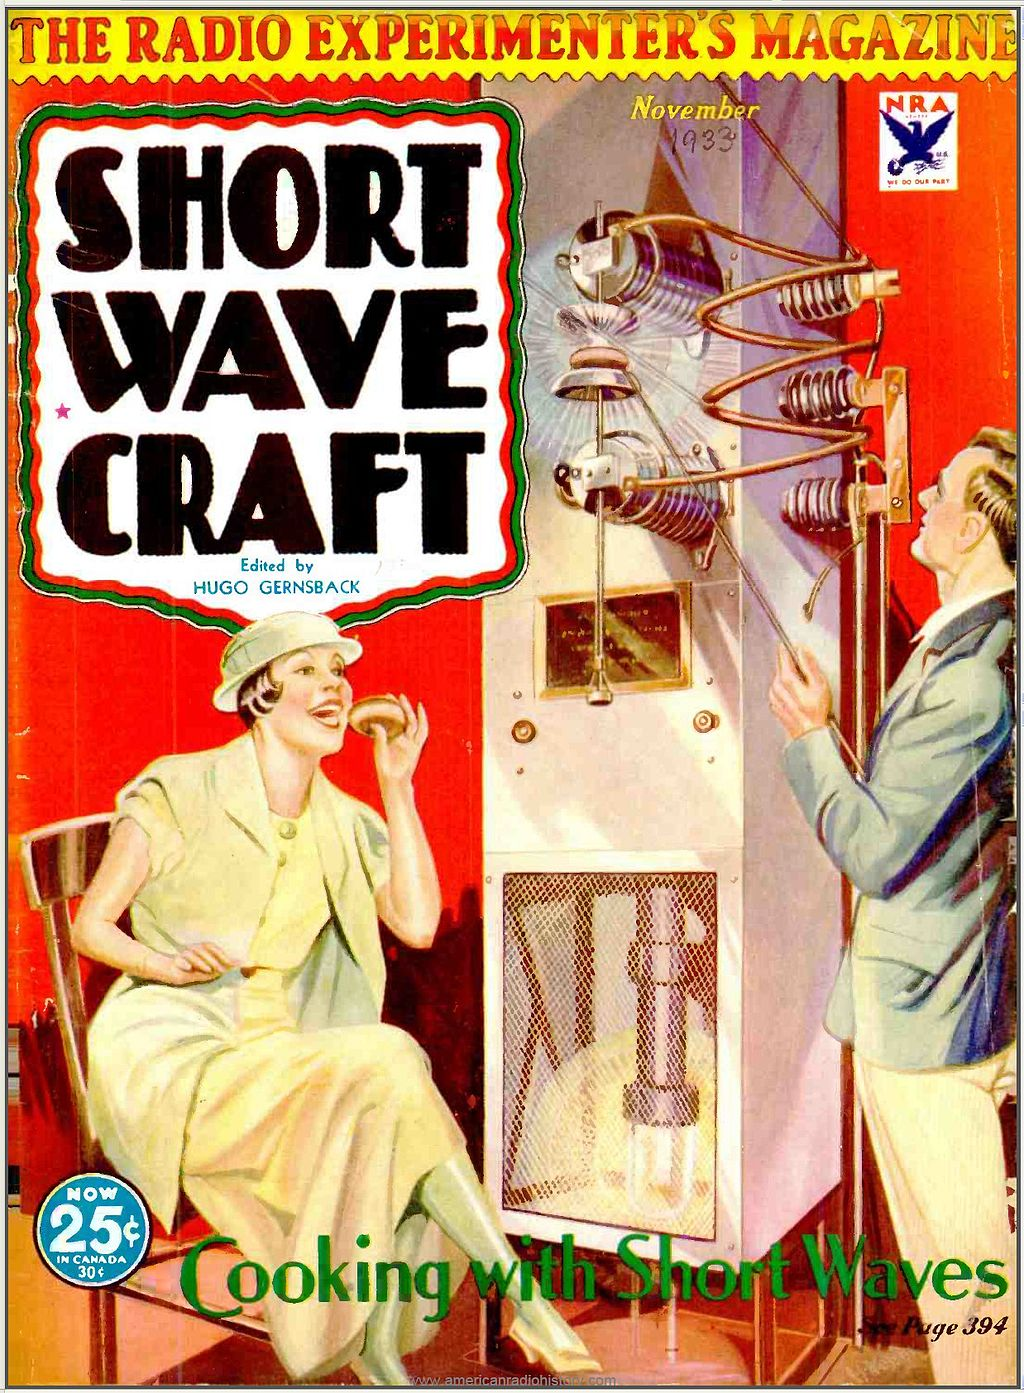 Cooking_with_radio_waves_-_Short_Wave_Craft_Nov_1933_cover.jpg